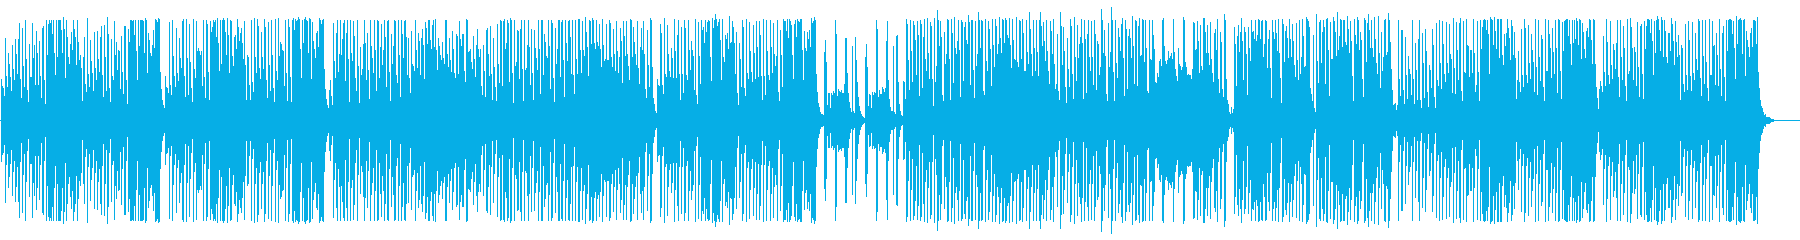 Slow and elegant classical waltz style BGM's reproduced waveform